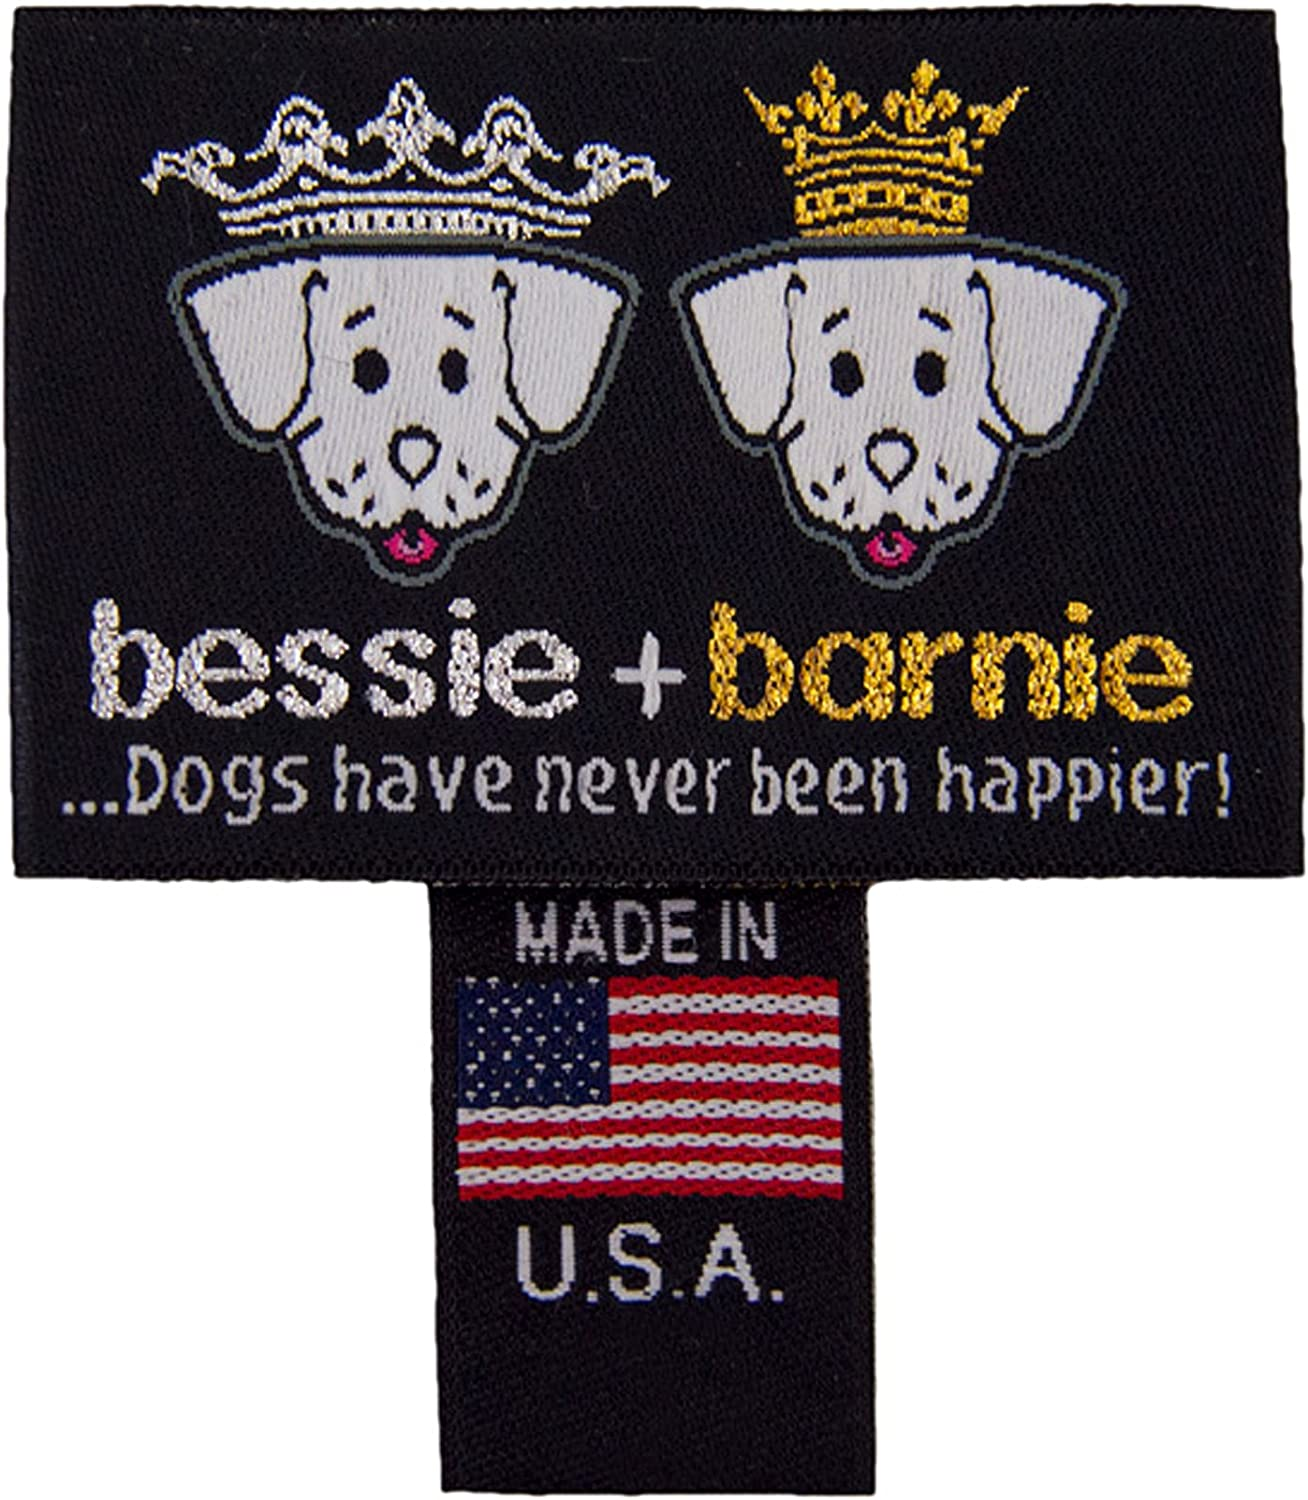 BESSIE AND BARNIE Ice Cream//Cotton Candy Luxury Ultra Plush Faux Fur Pet Puppy Super Soft Reversible Blanket Dog Multiple Sizes Cat